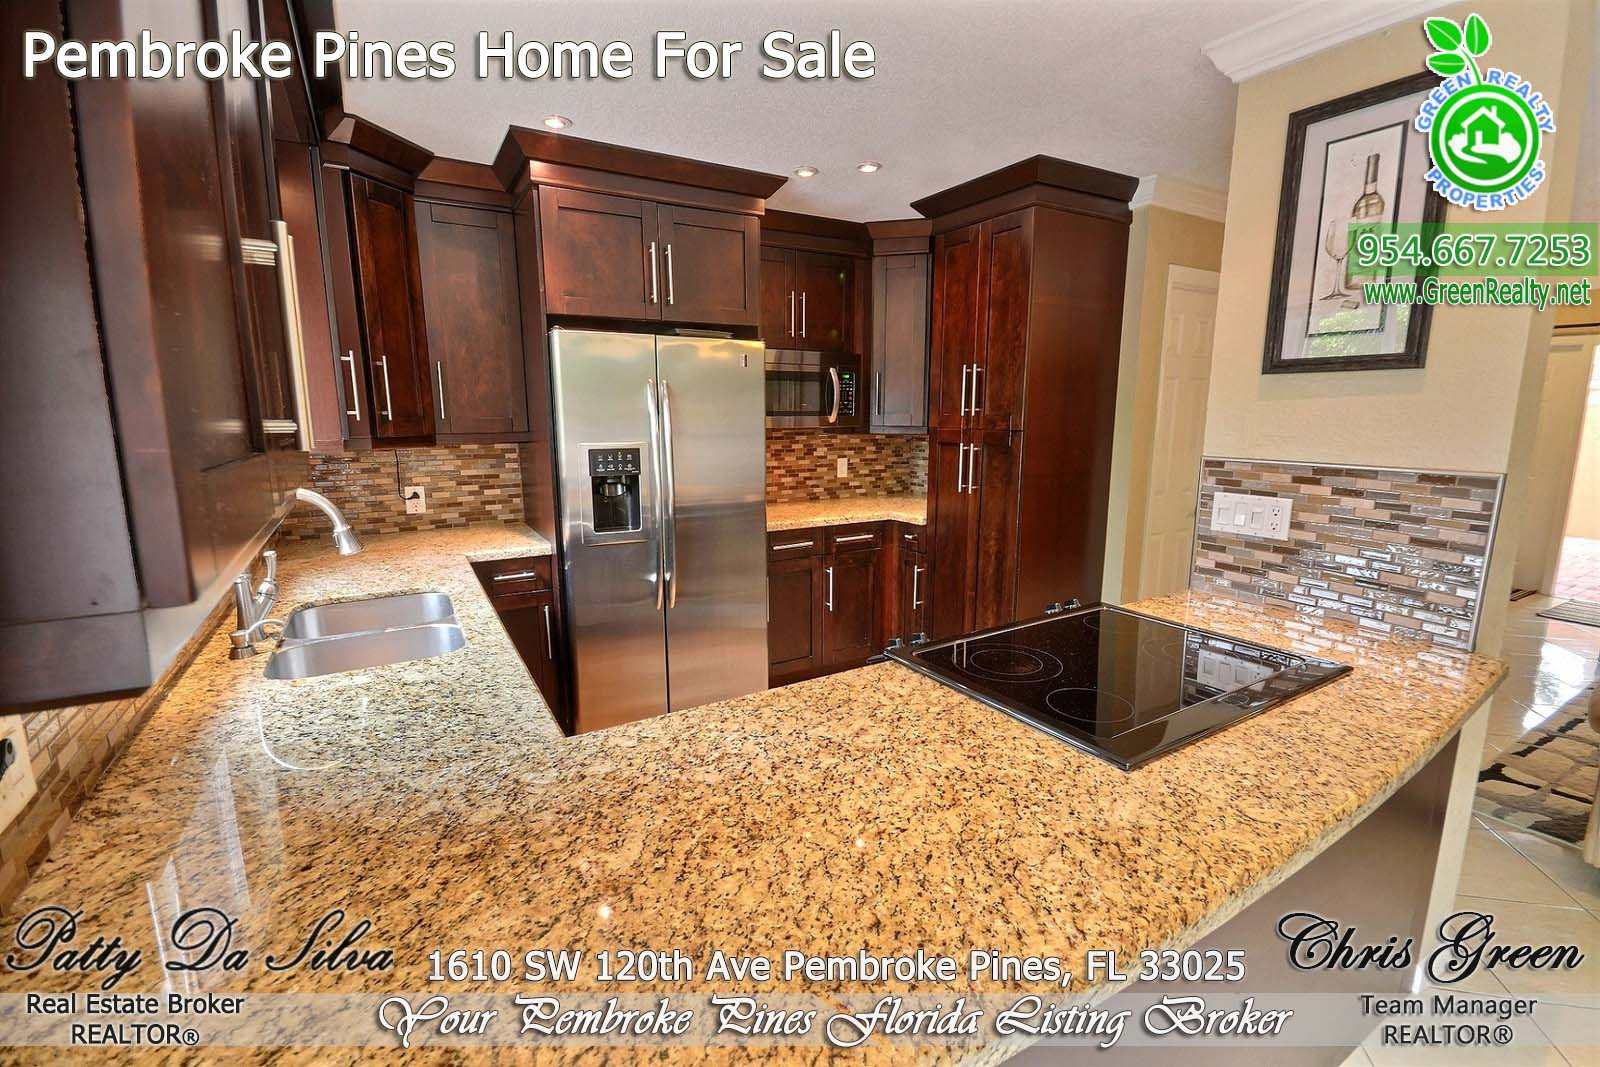 5 Las Palmas at Pembroke Pines Homes For Sale (4)